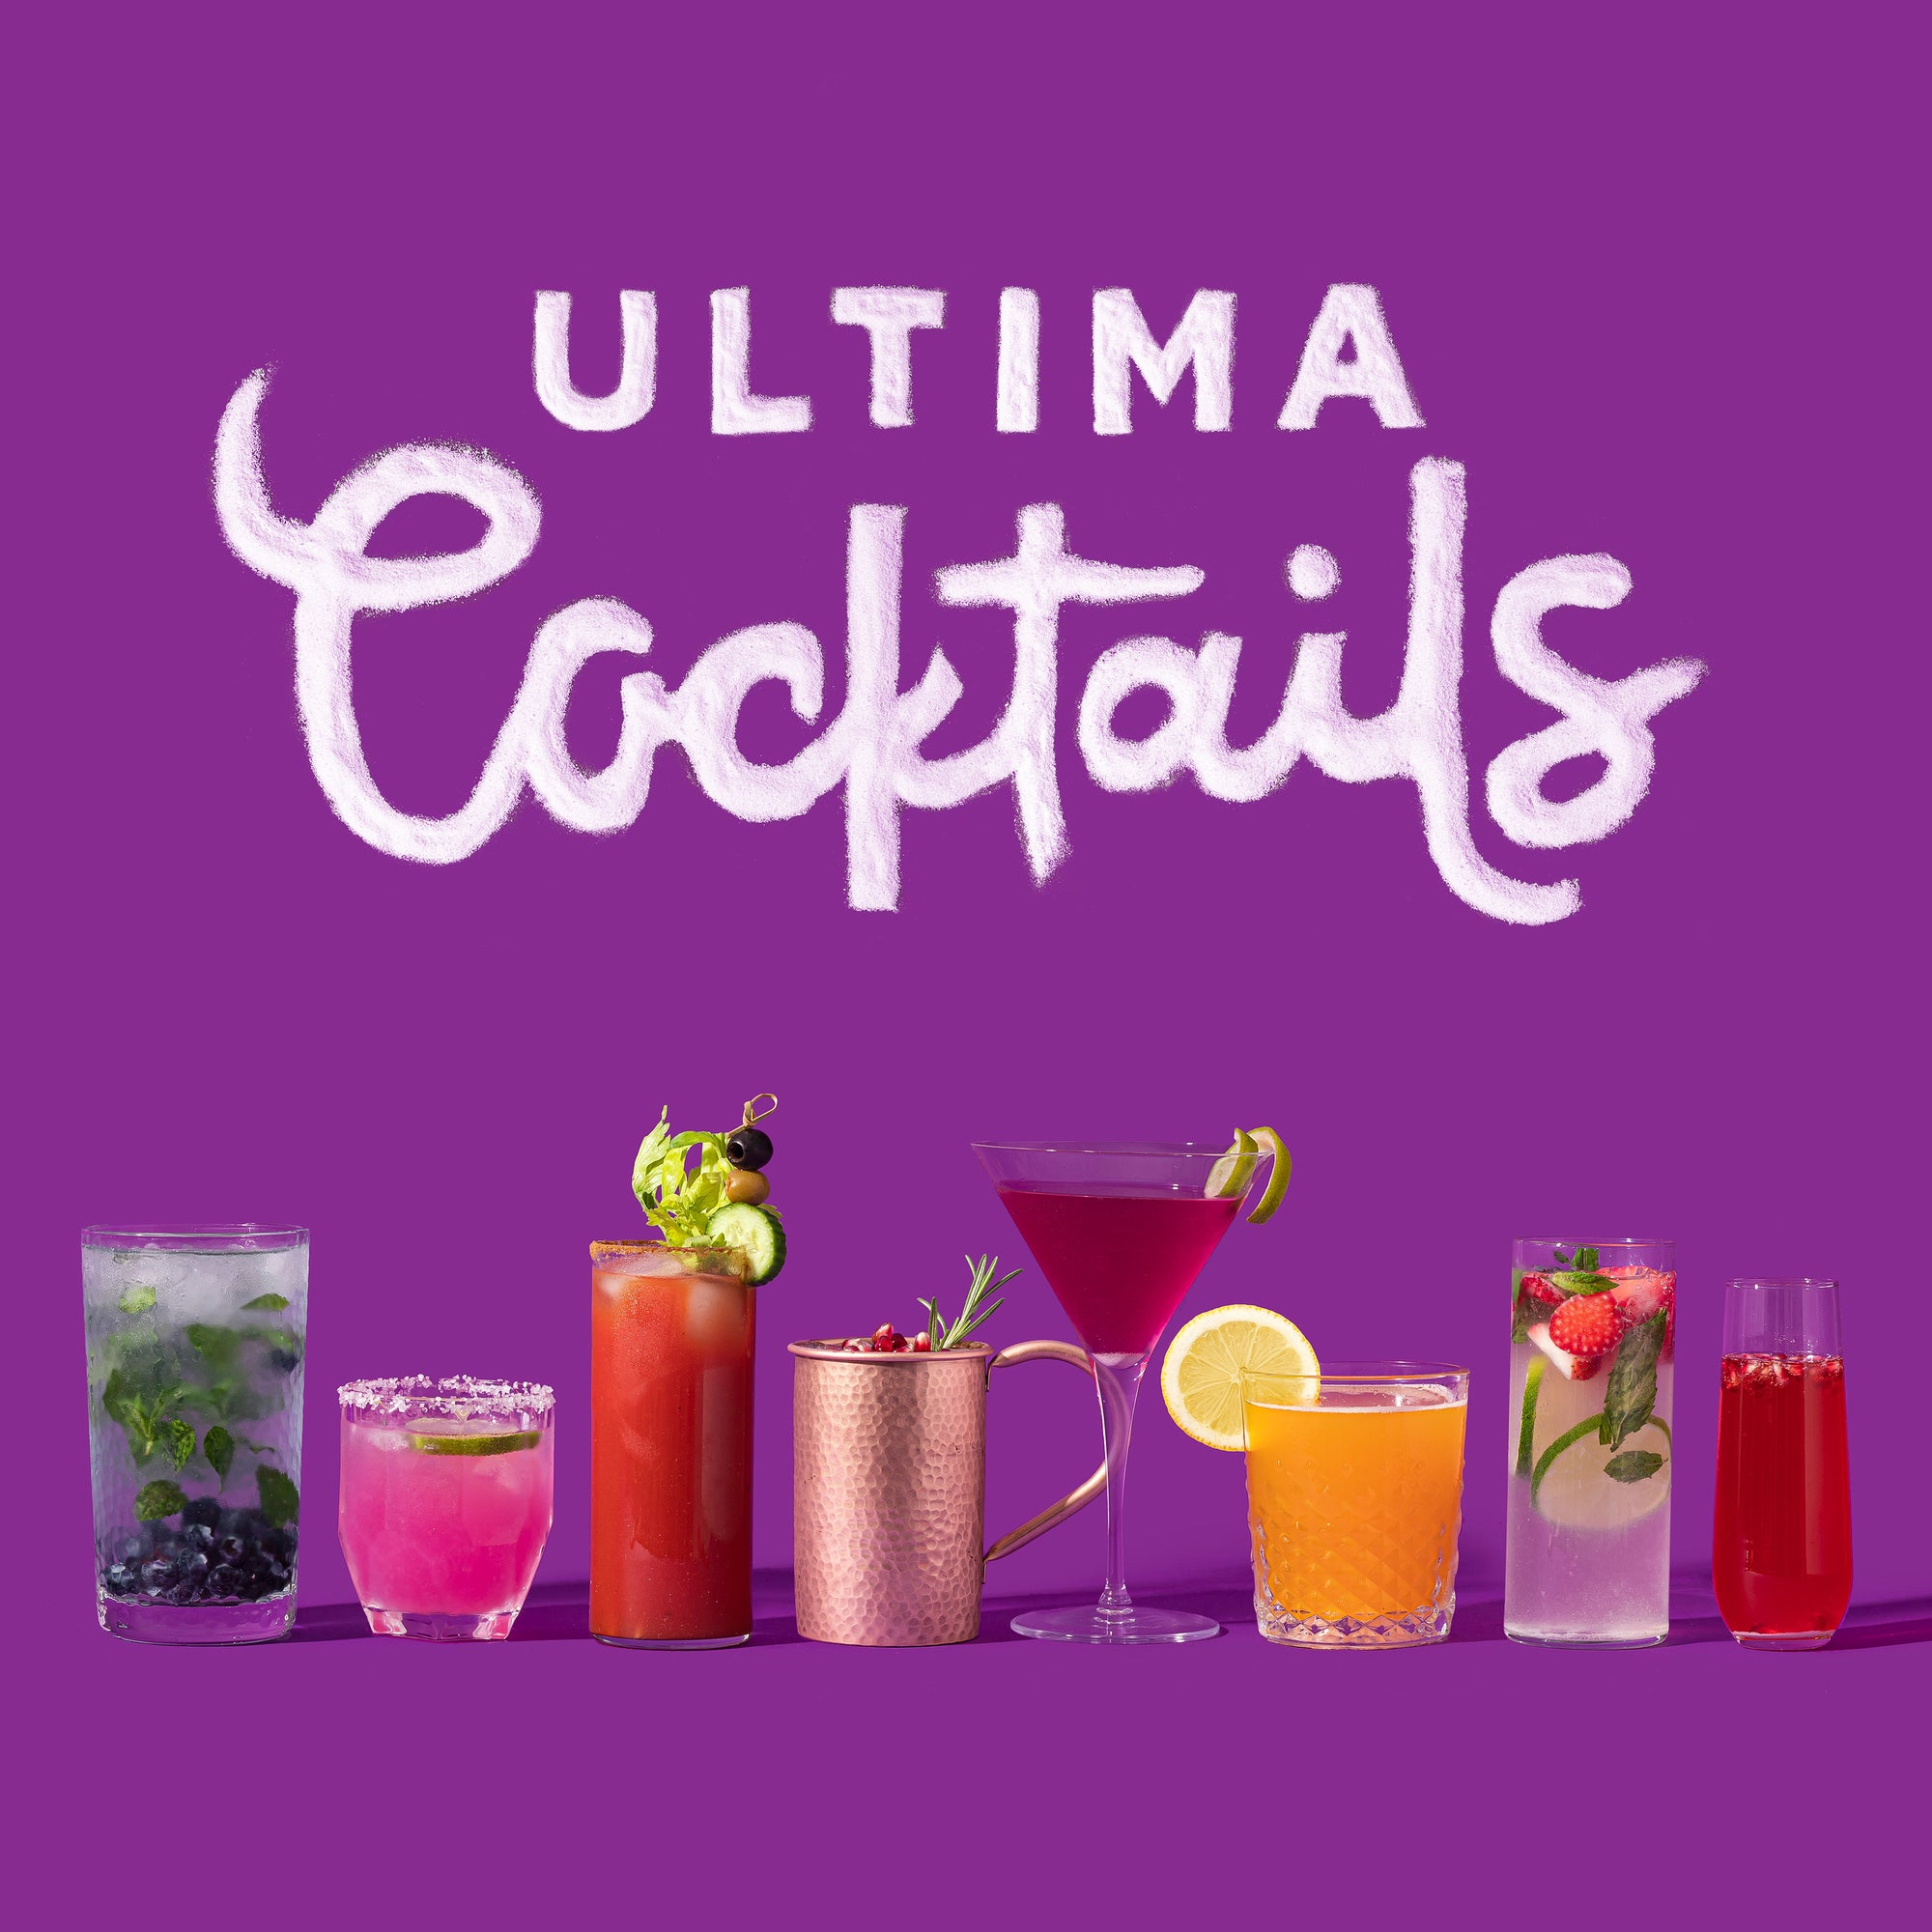 Ultima Cocktails To Celebrate The Playful Side of Life